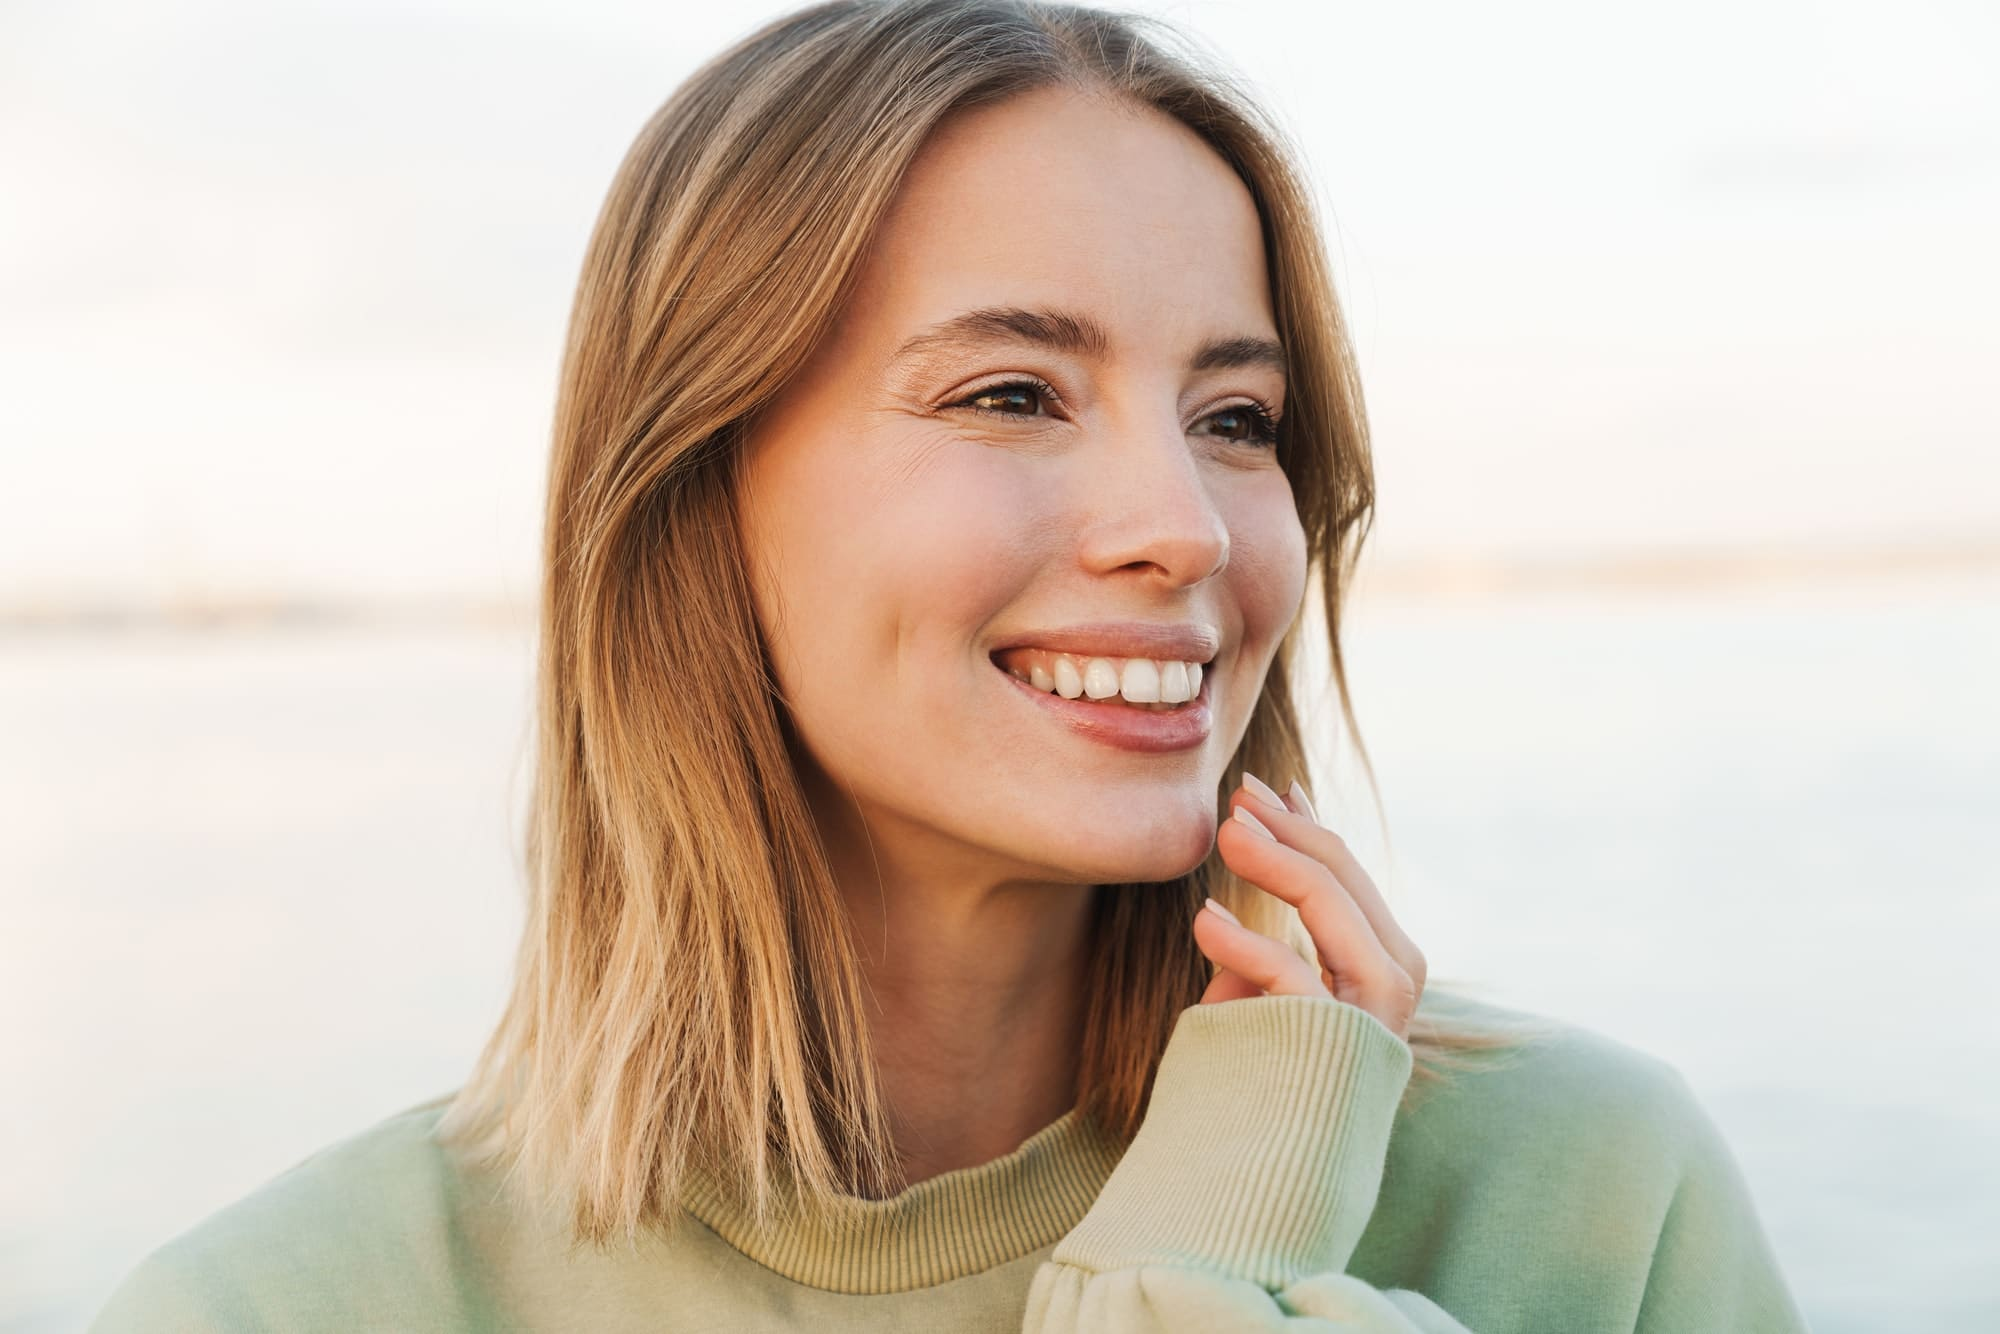 Portrait of happy woman smiling and looking aside